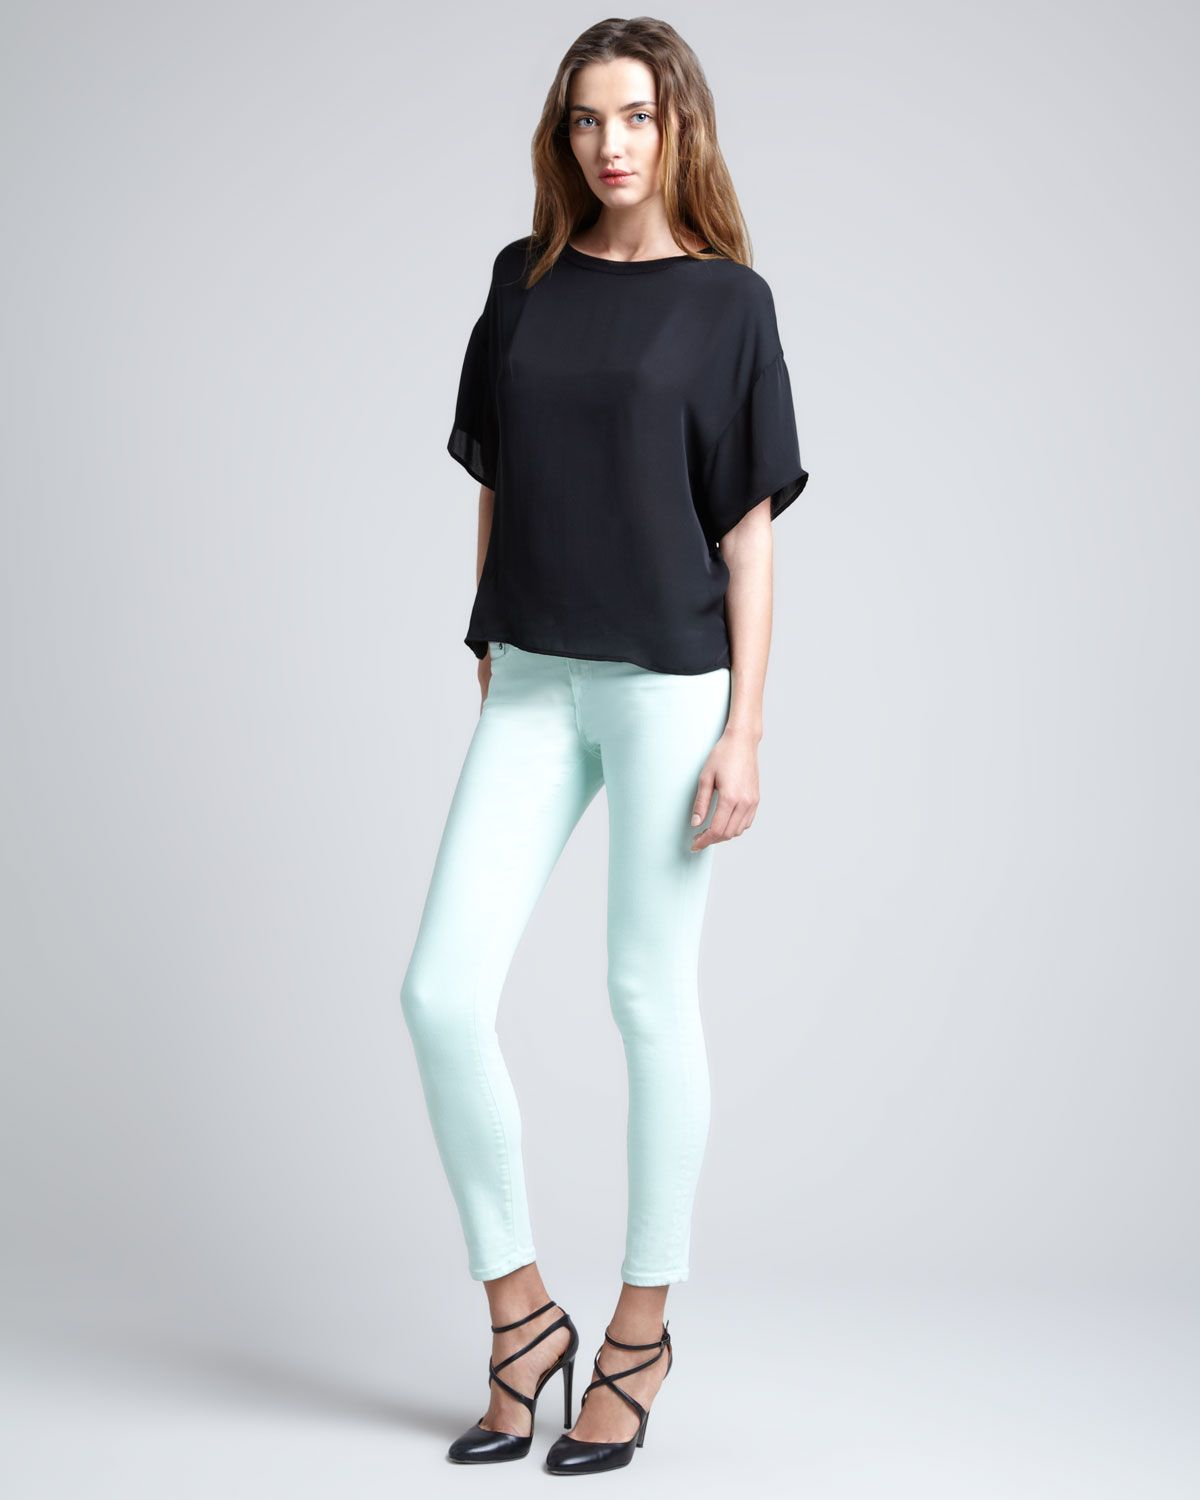 http://ncrni.com/vince-oversized-mixed-media-sweater-skinny-ankle-jeans-p-3034.html